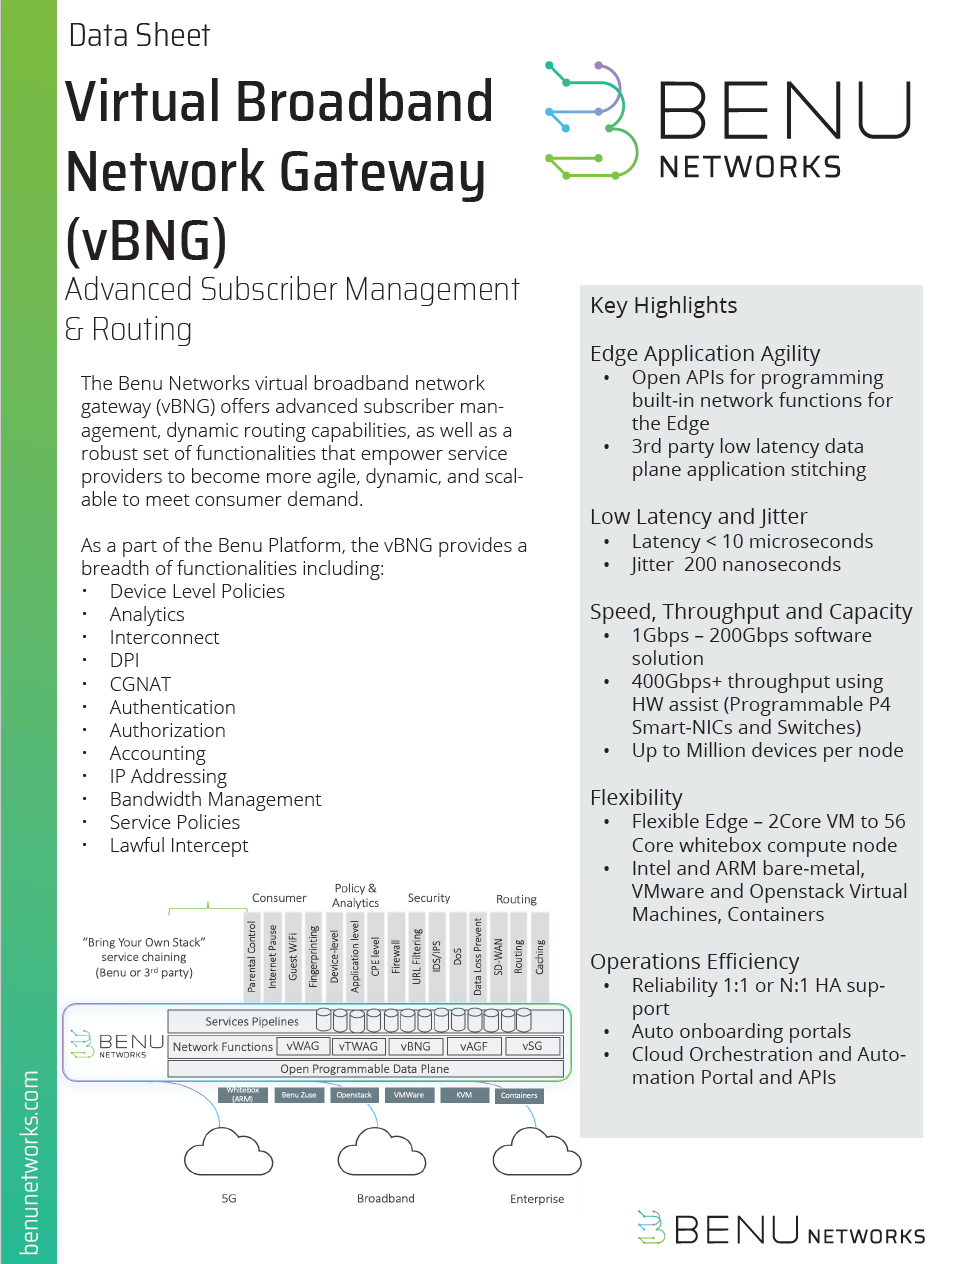 virtual broadband network gateway data sheet